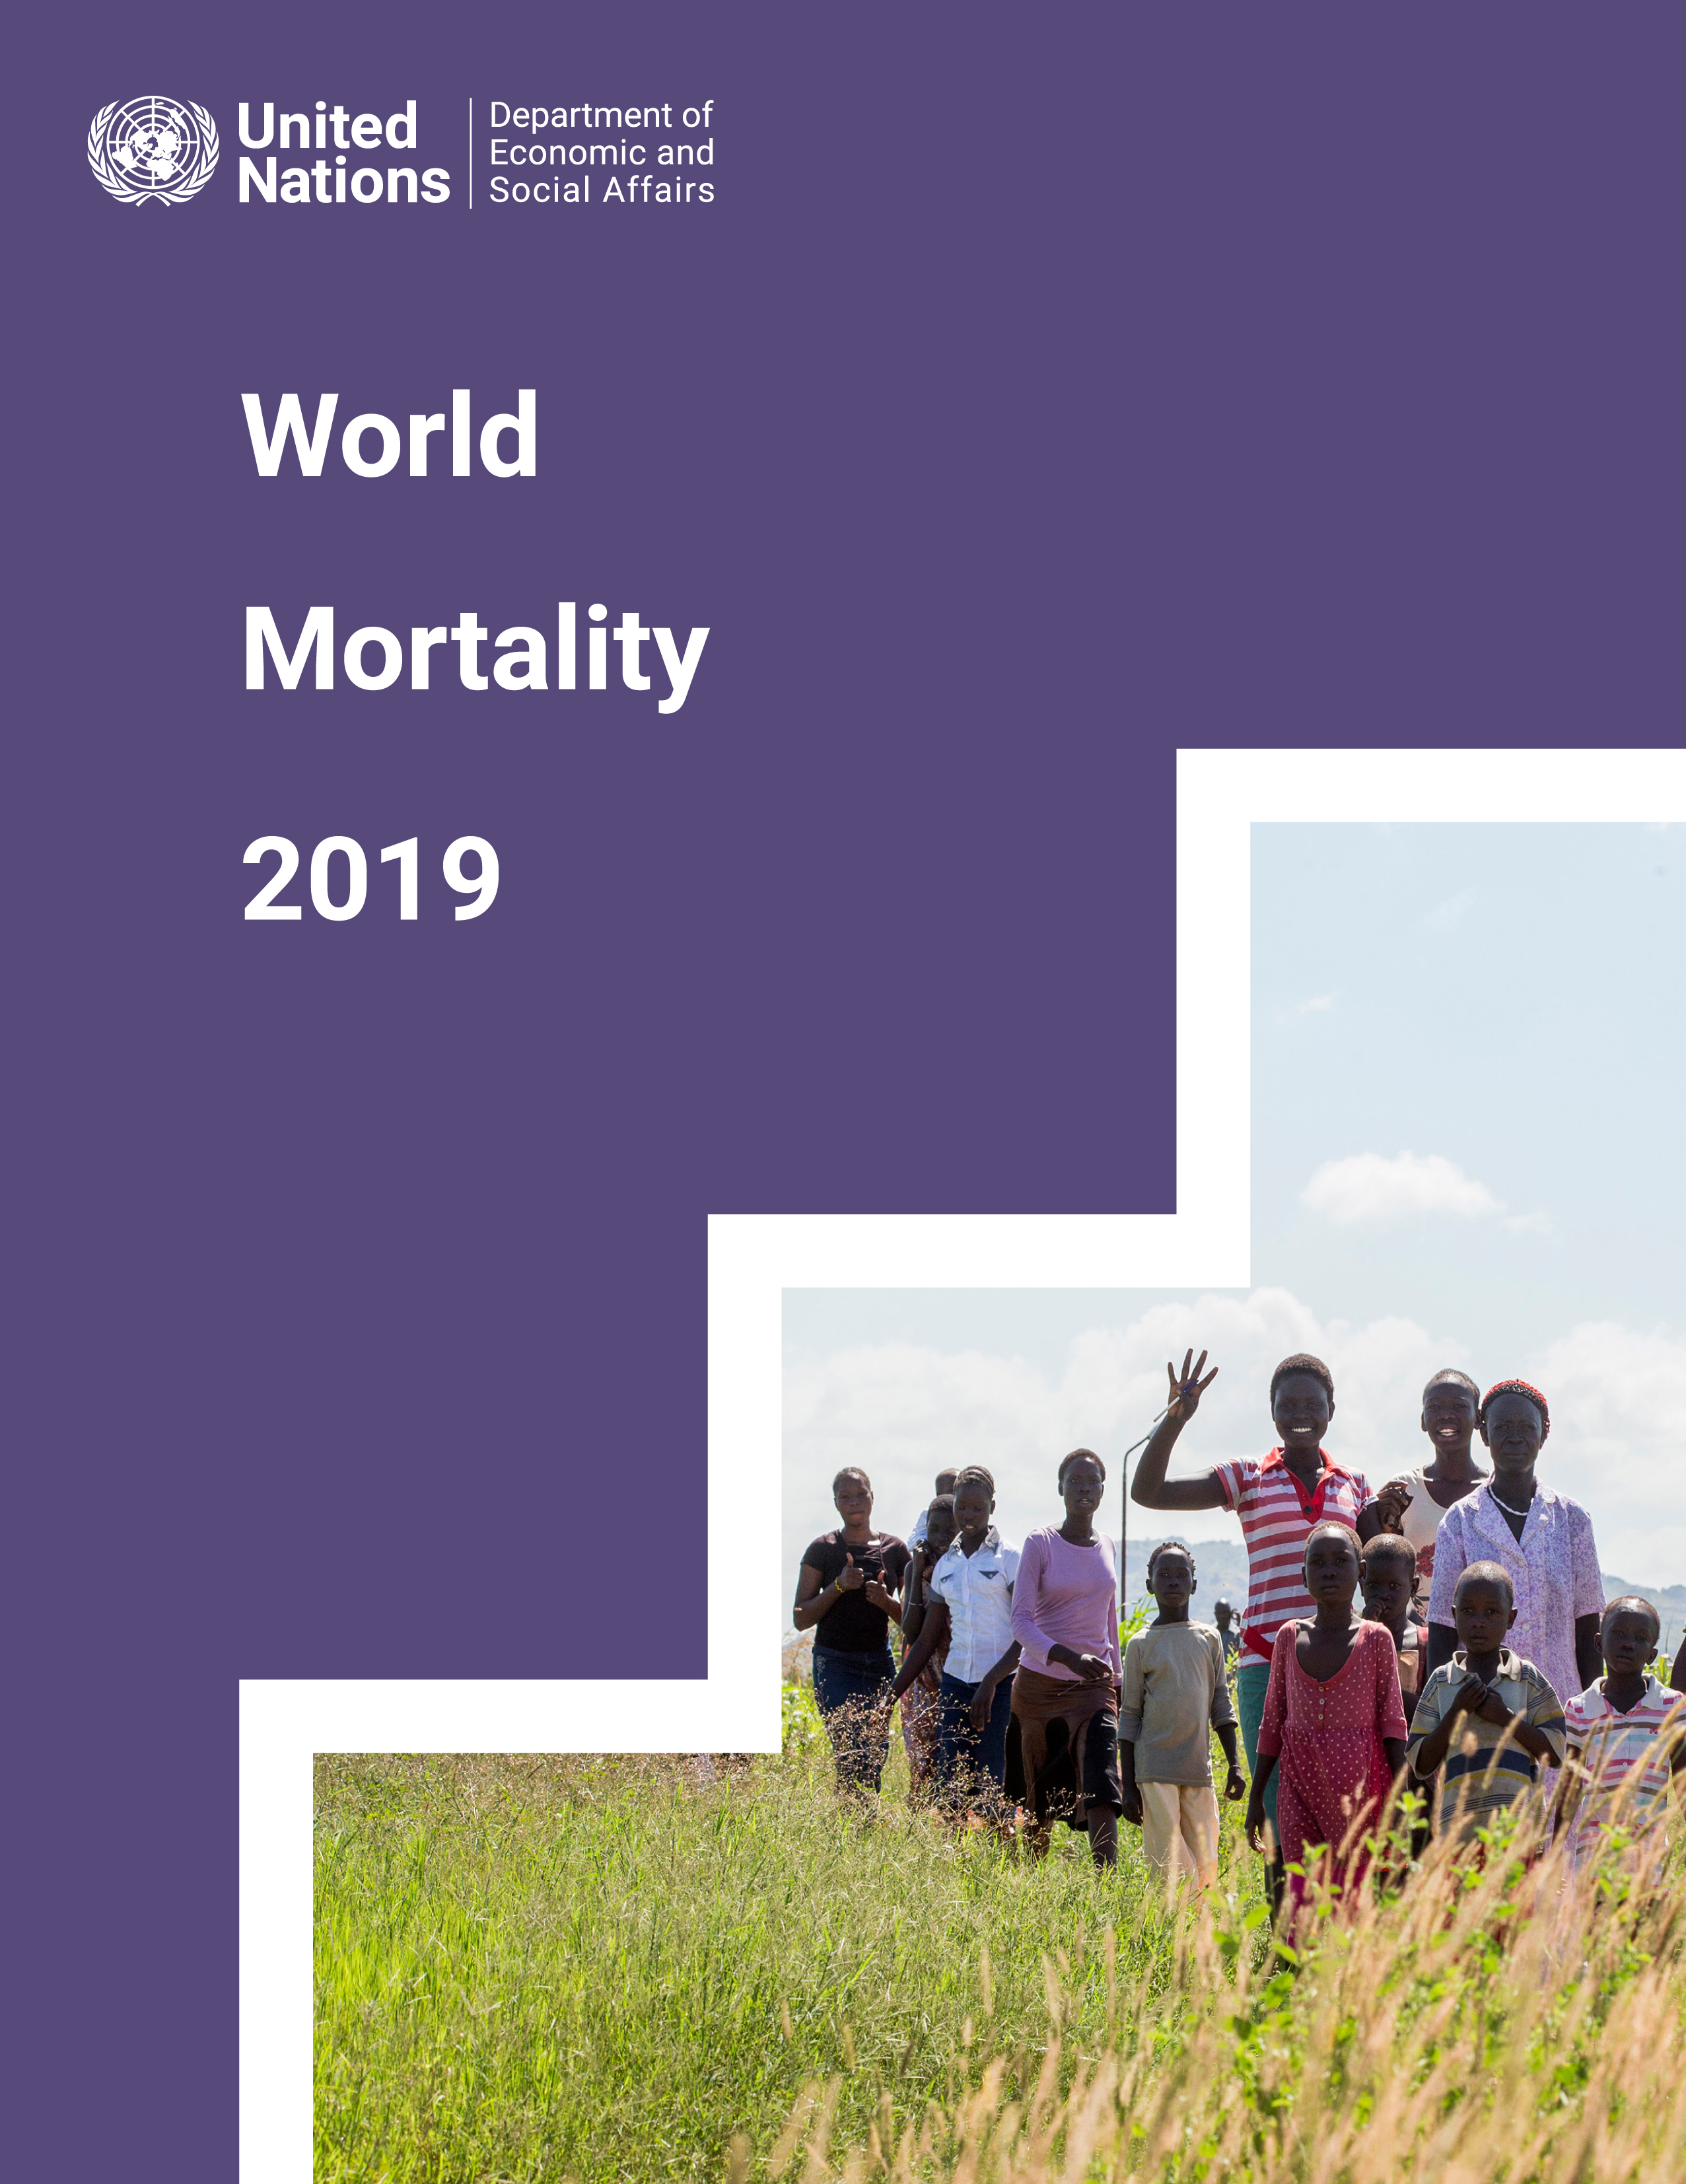 image of World Mortality 2019